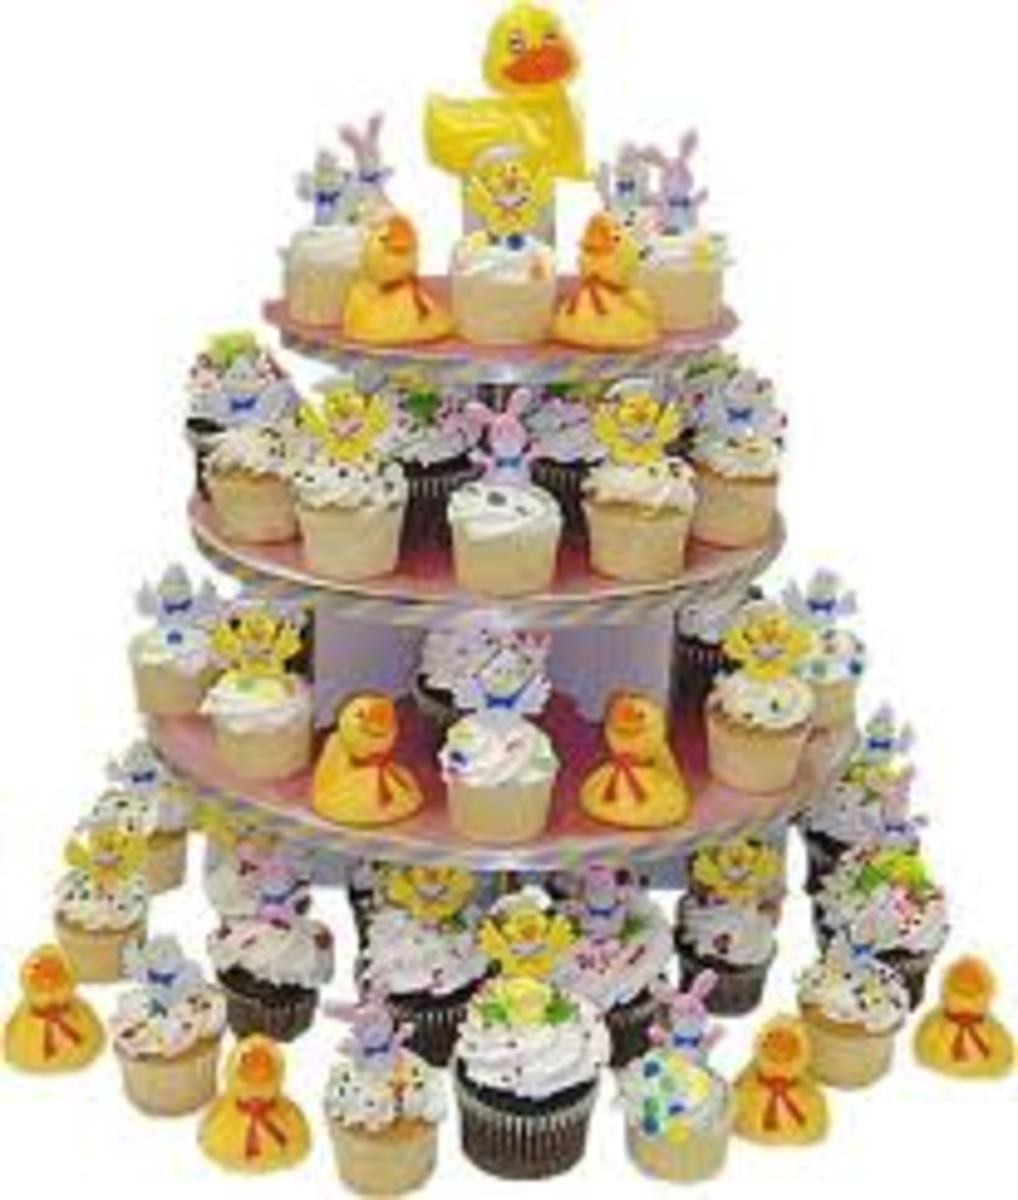 This cupcake monument will catch many eyes at your baby shower.